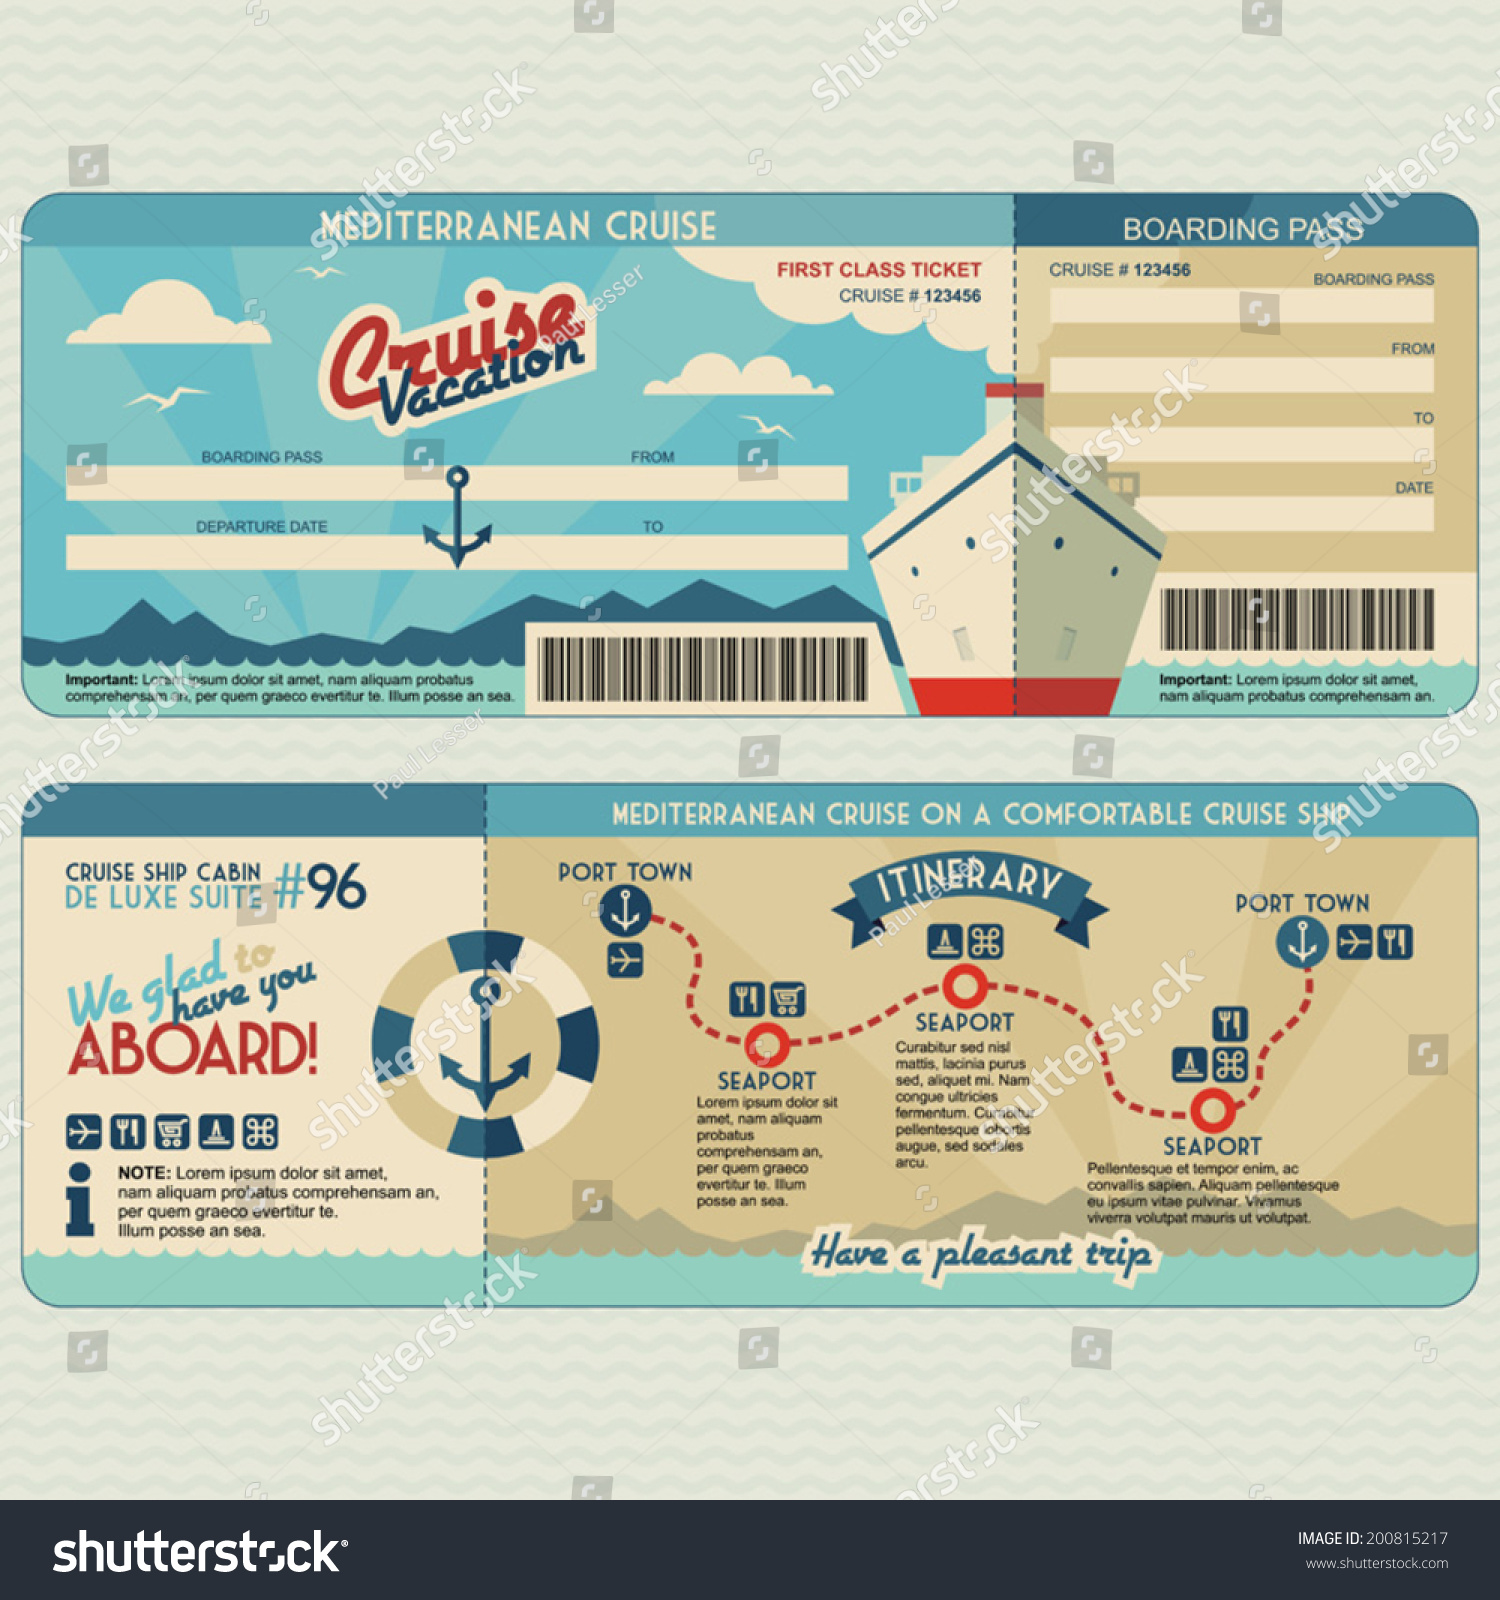 Cruise Ship Boarding Pass Flat Graphic Vector 200815217 – Cruise Itinerary Template